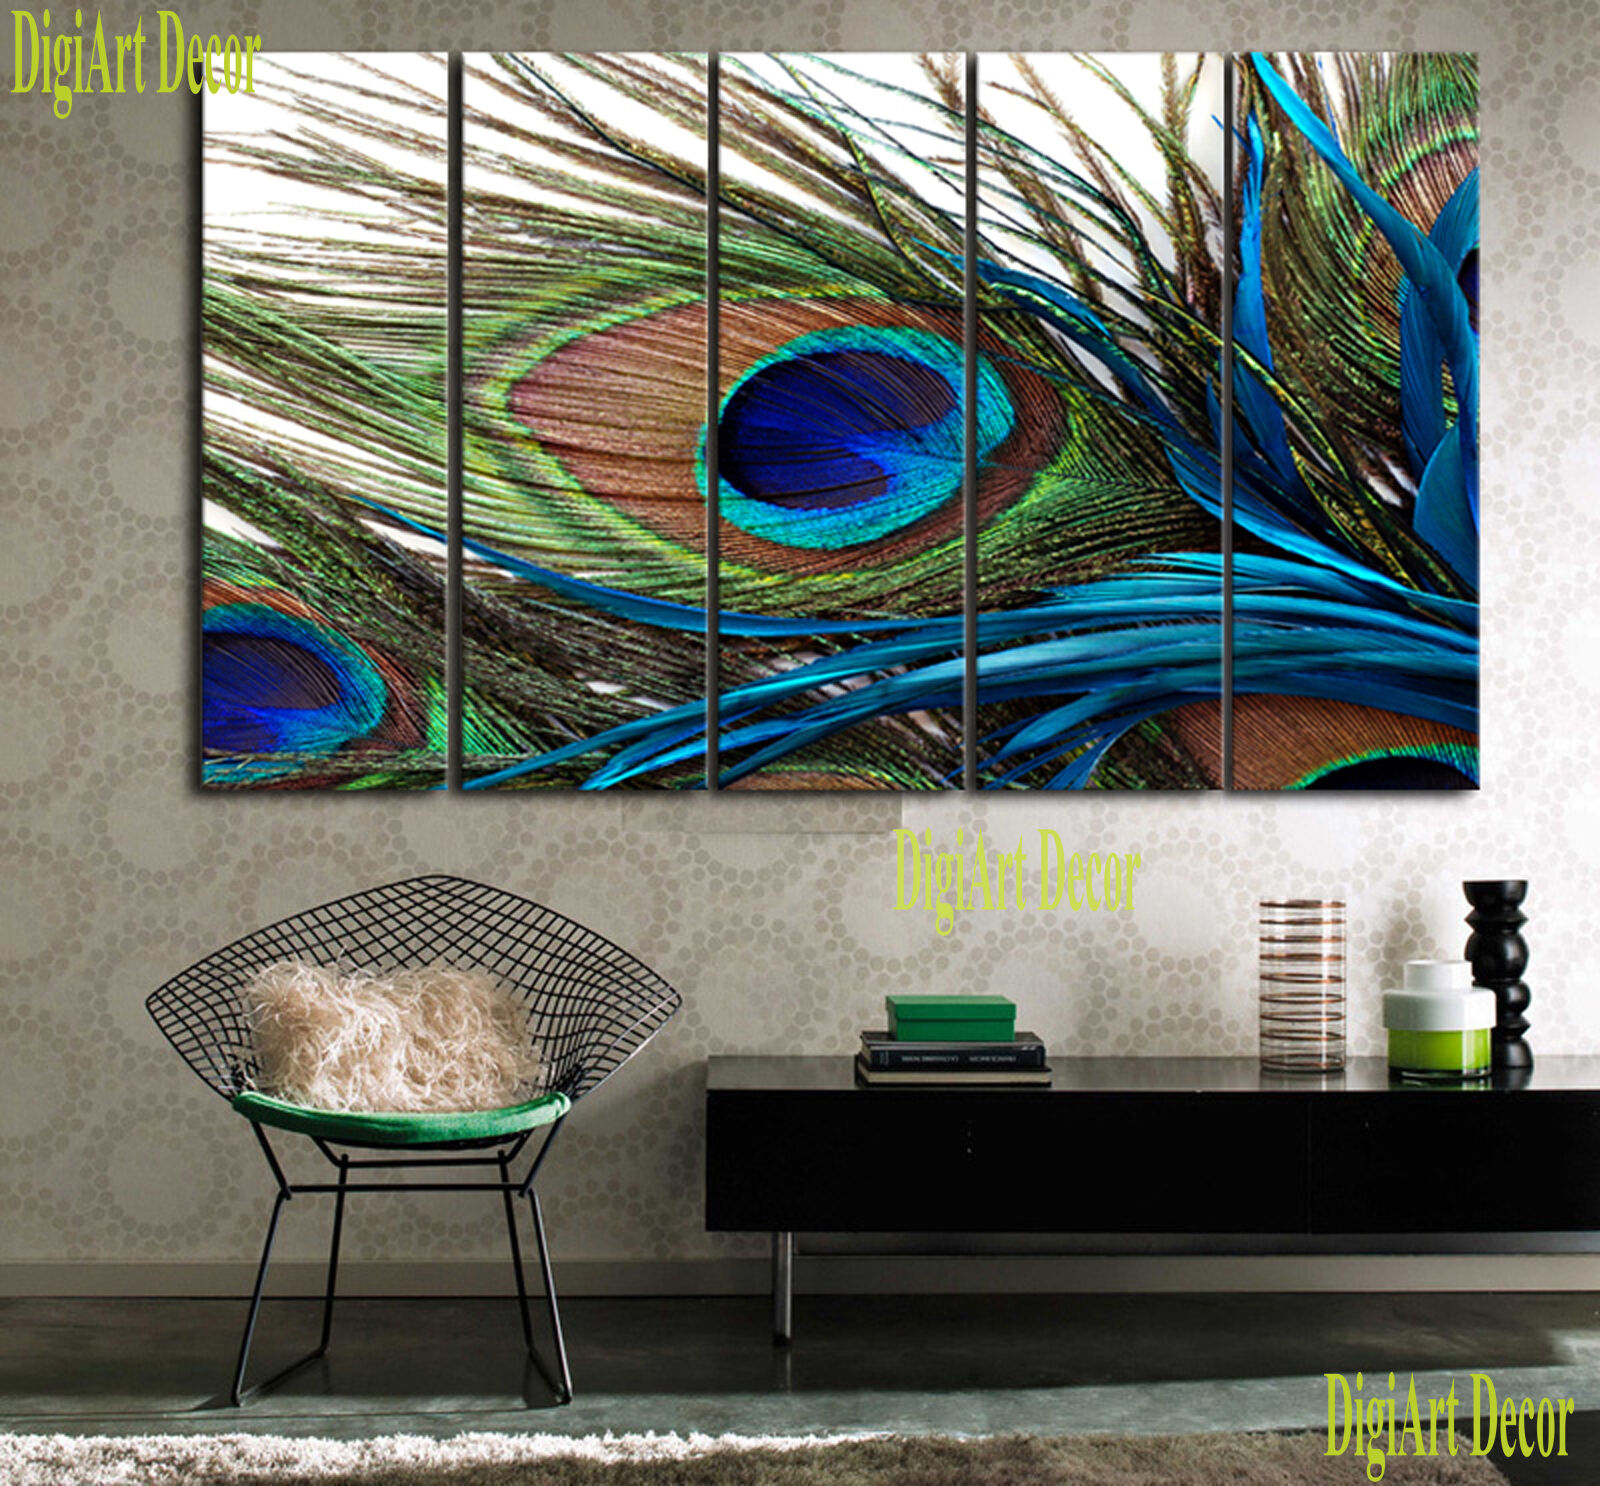 PEACOCK FEATHER 5 panel mounted fiberboard canvas wall art surpassed stretched